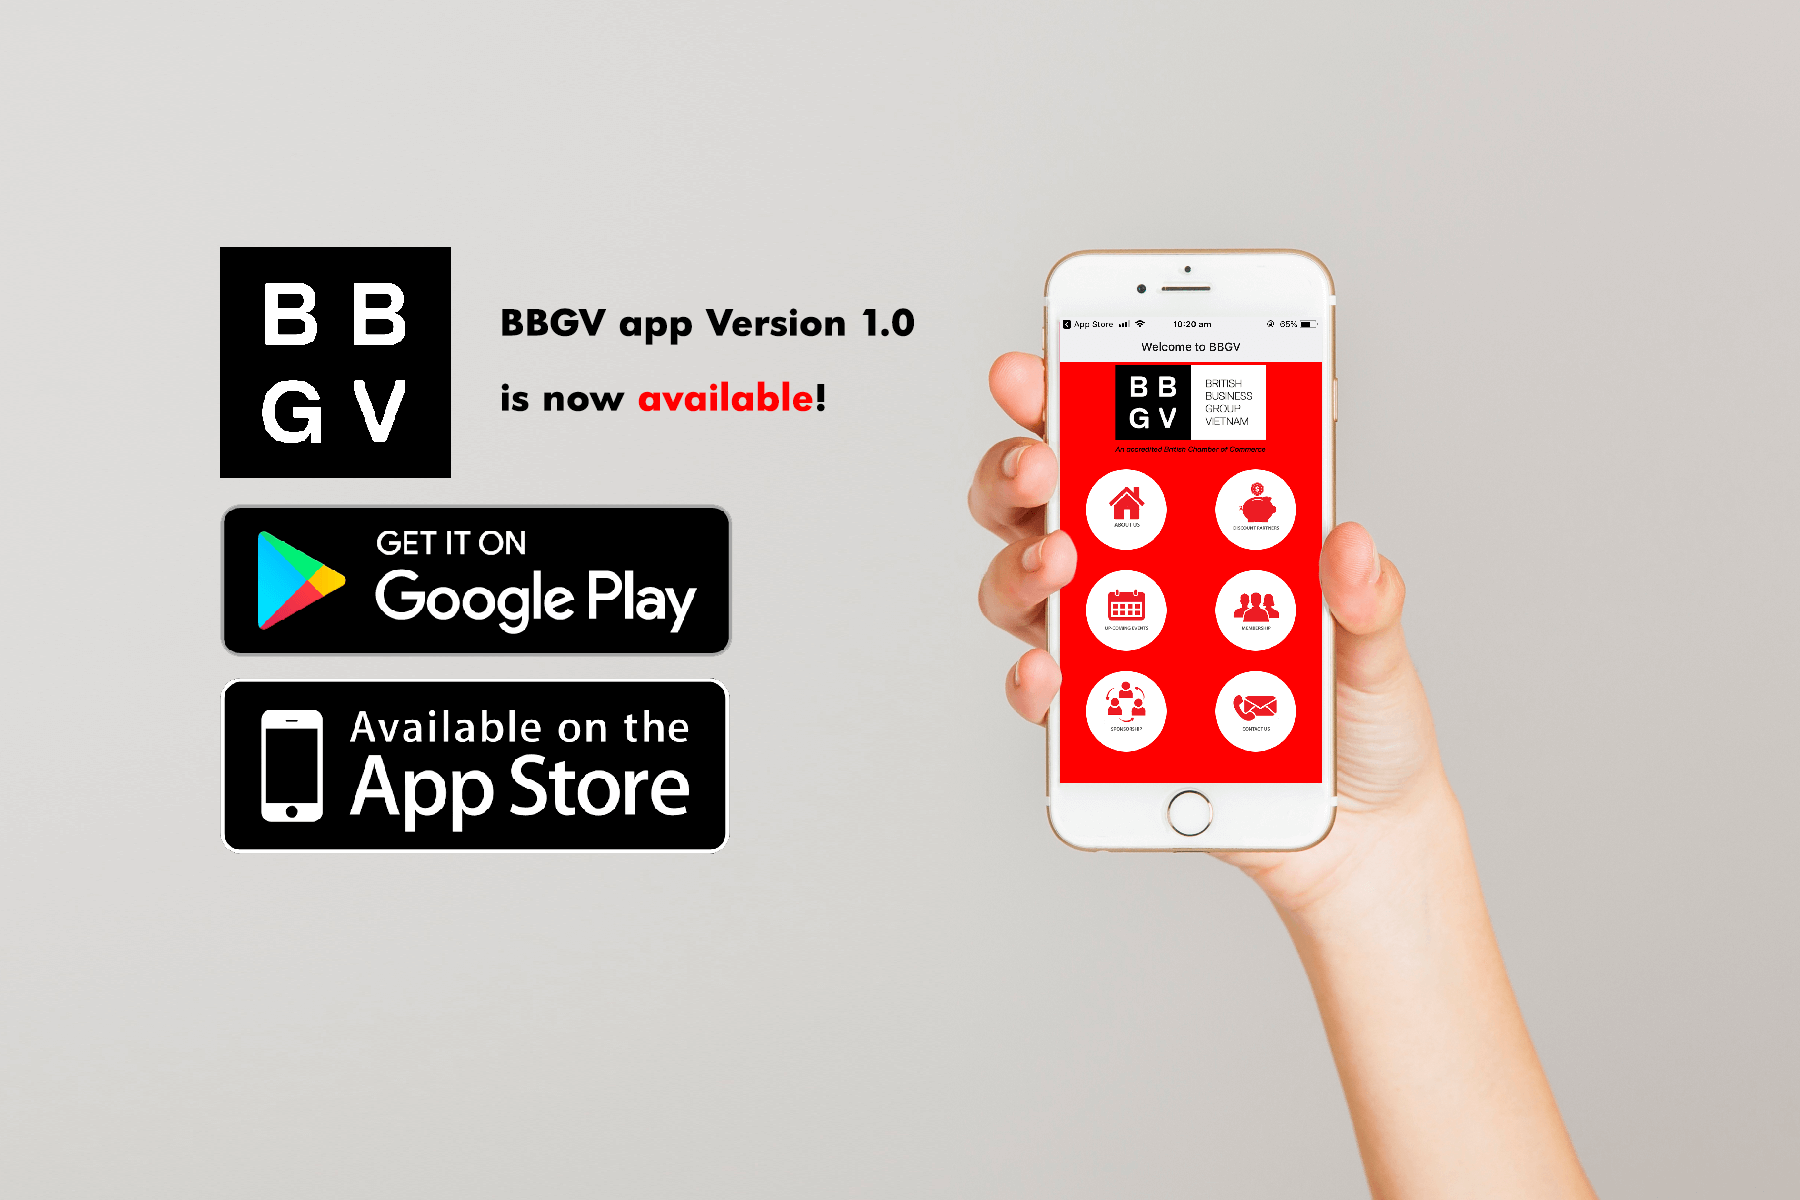 BBGV App Version 1.0 is now Available!